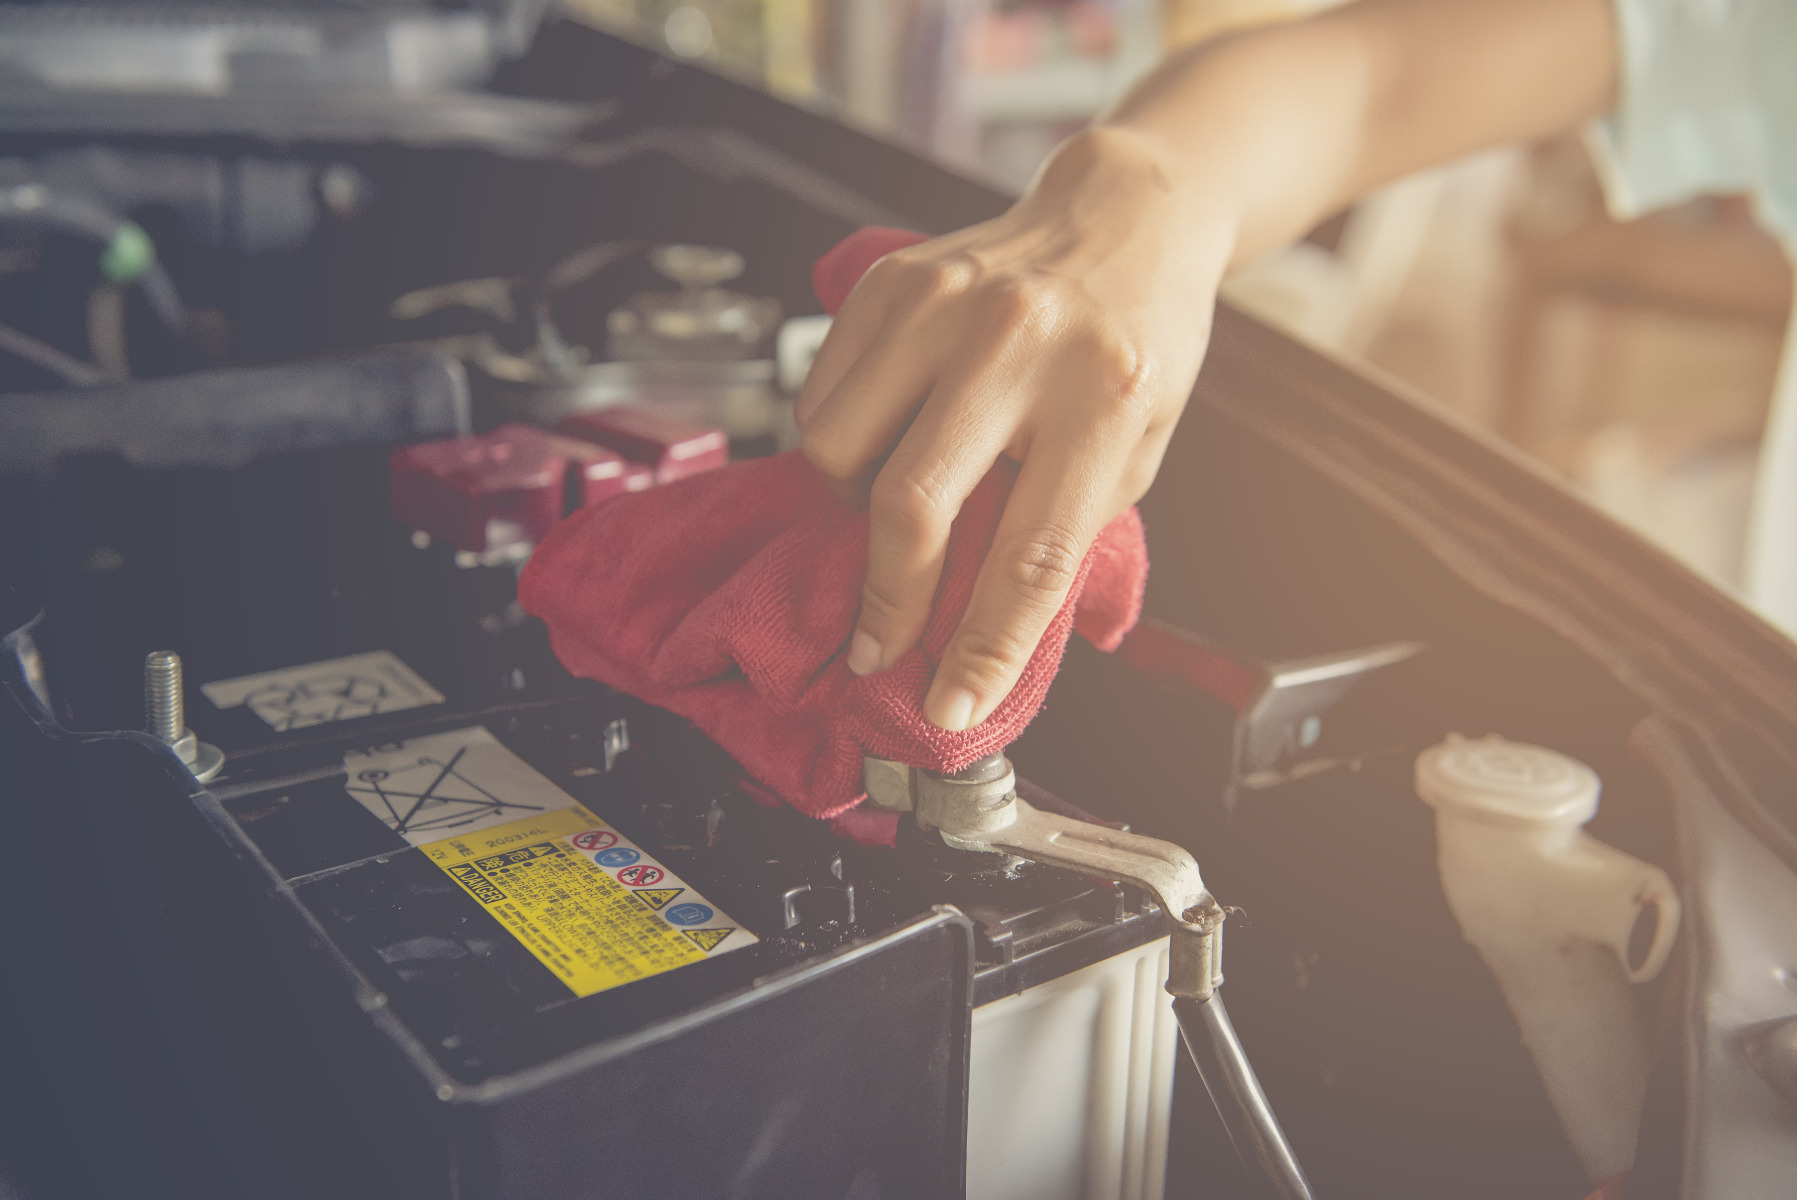 which is the cheapest place to buy a car battery